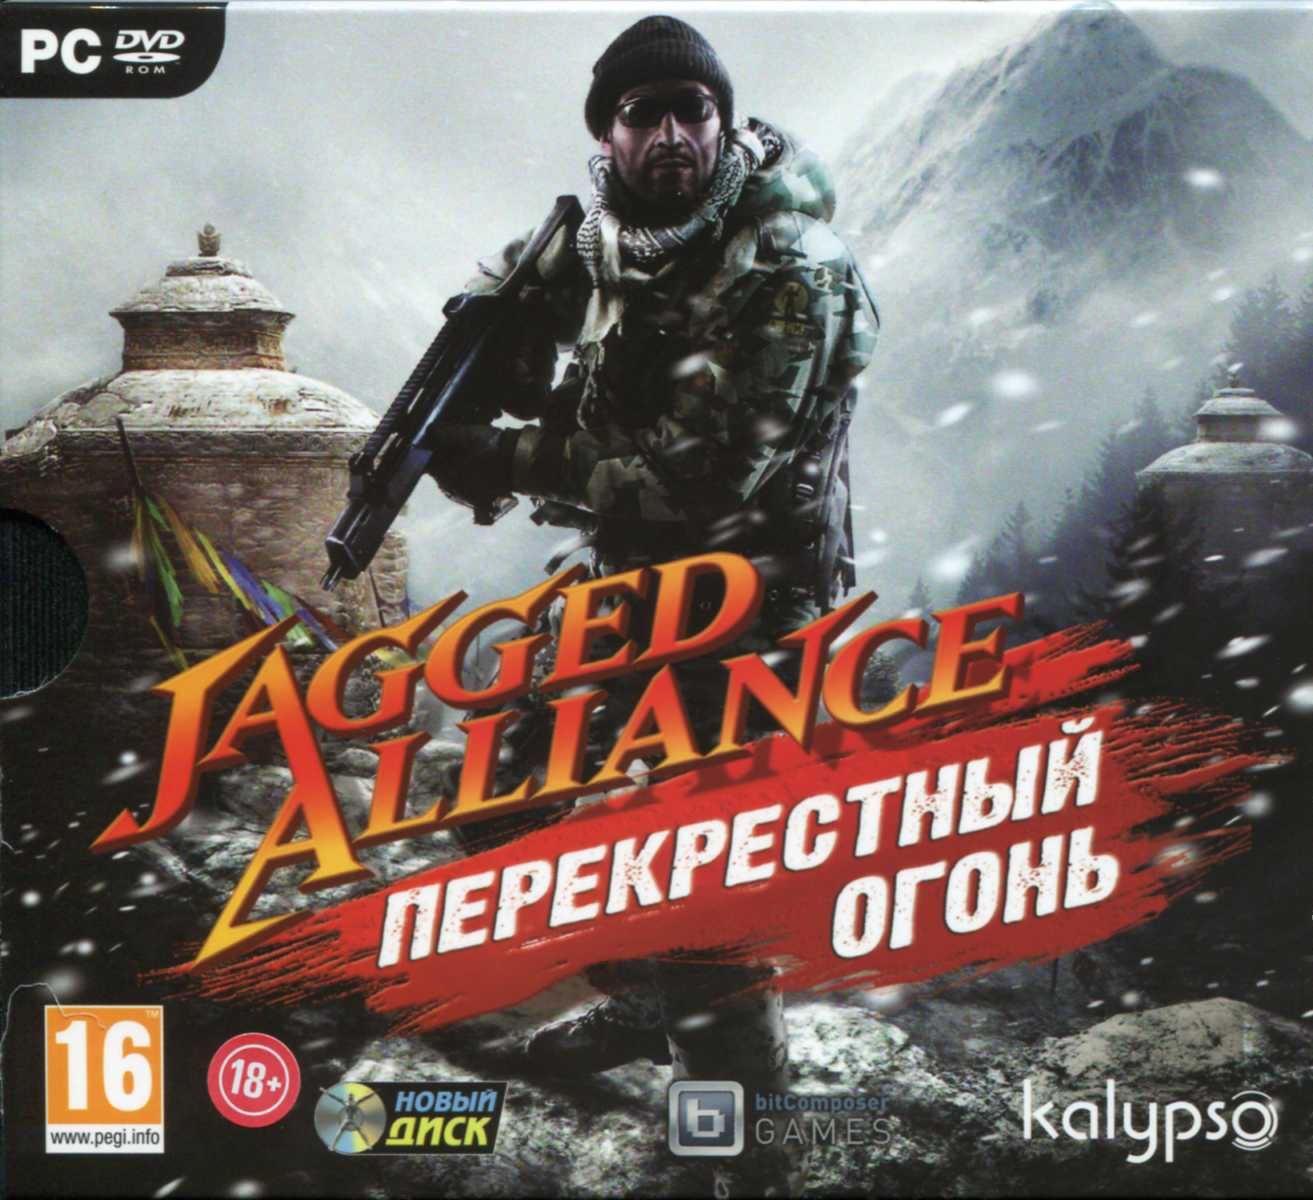 Jagged Alliance: Crossfire (activation key in Steam)